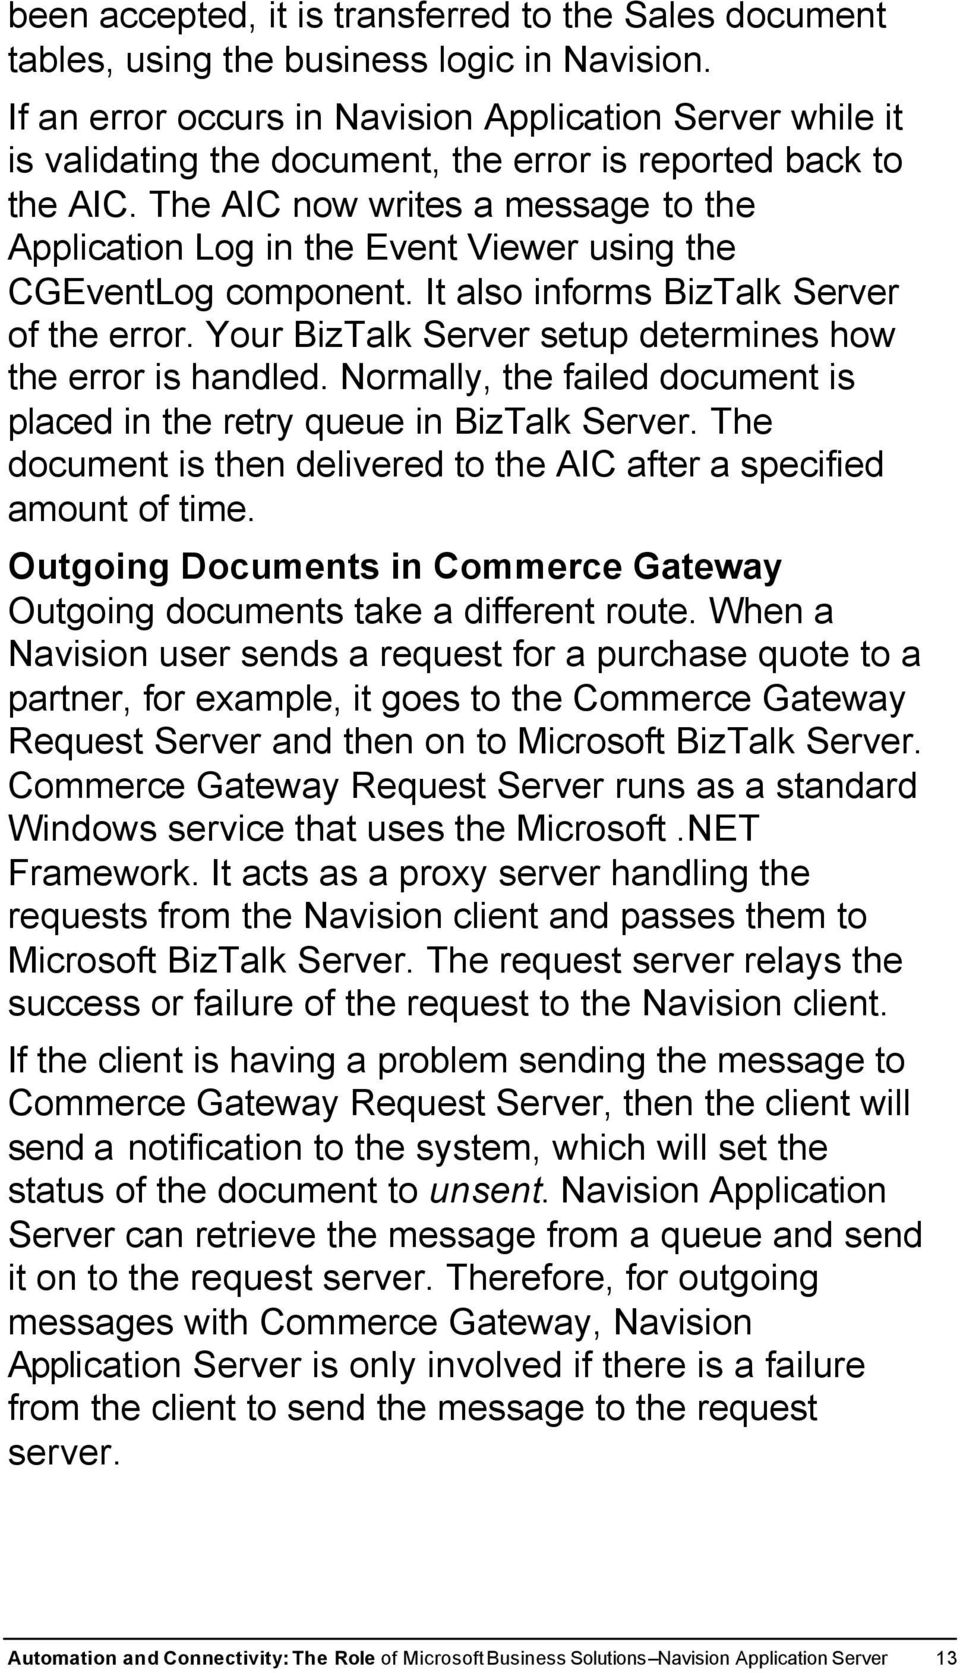 The AIC now writes a message to the Application Log in the Event Viewer using the CGEventLog component. It also informs BizTalk Server of the error.